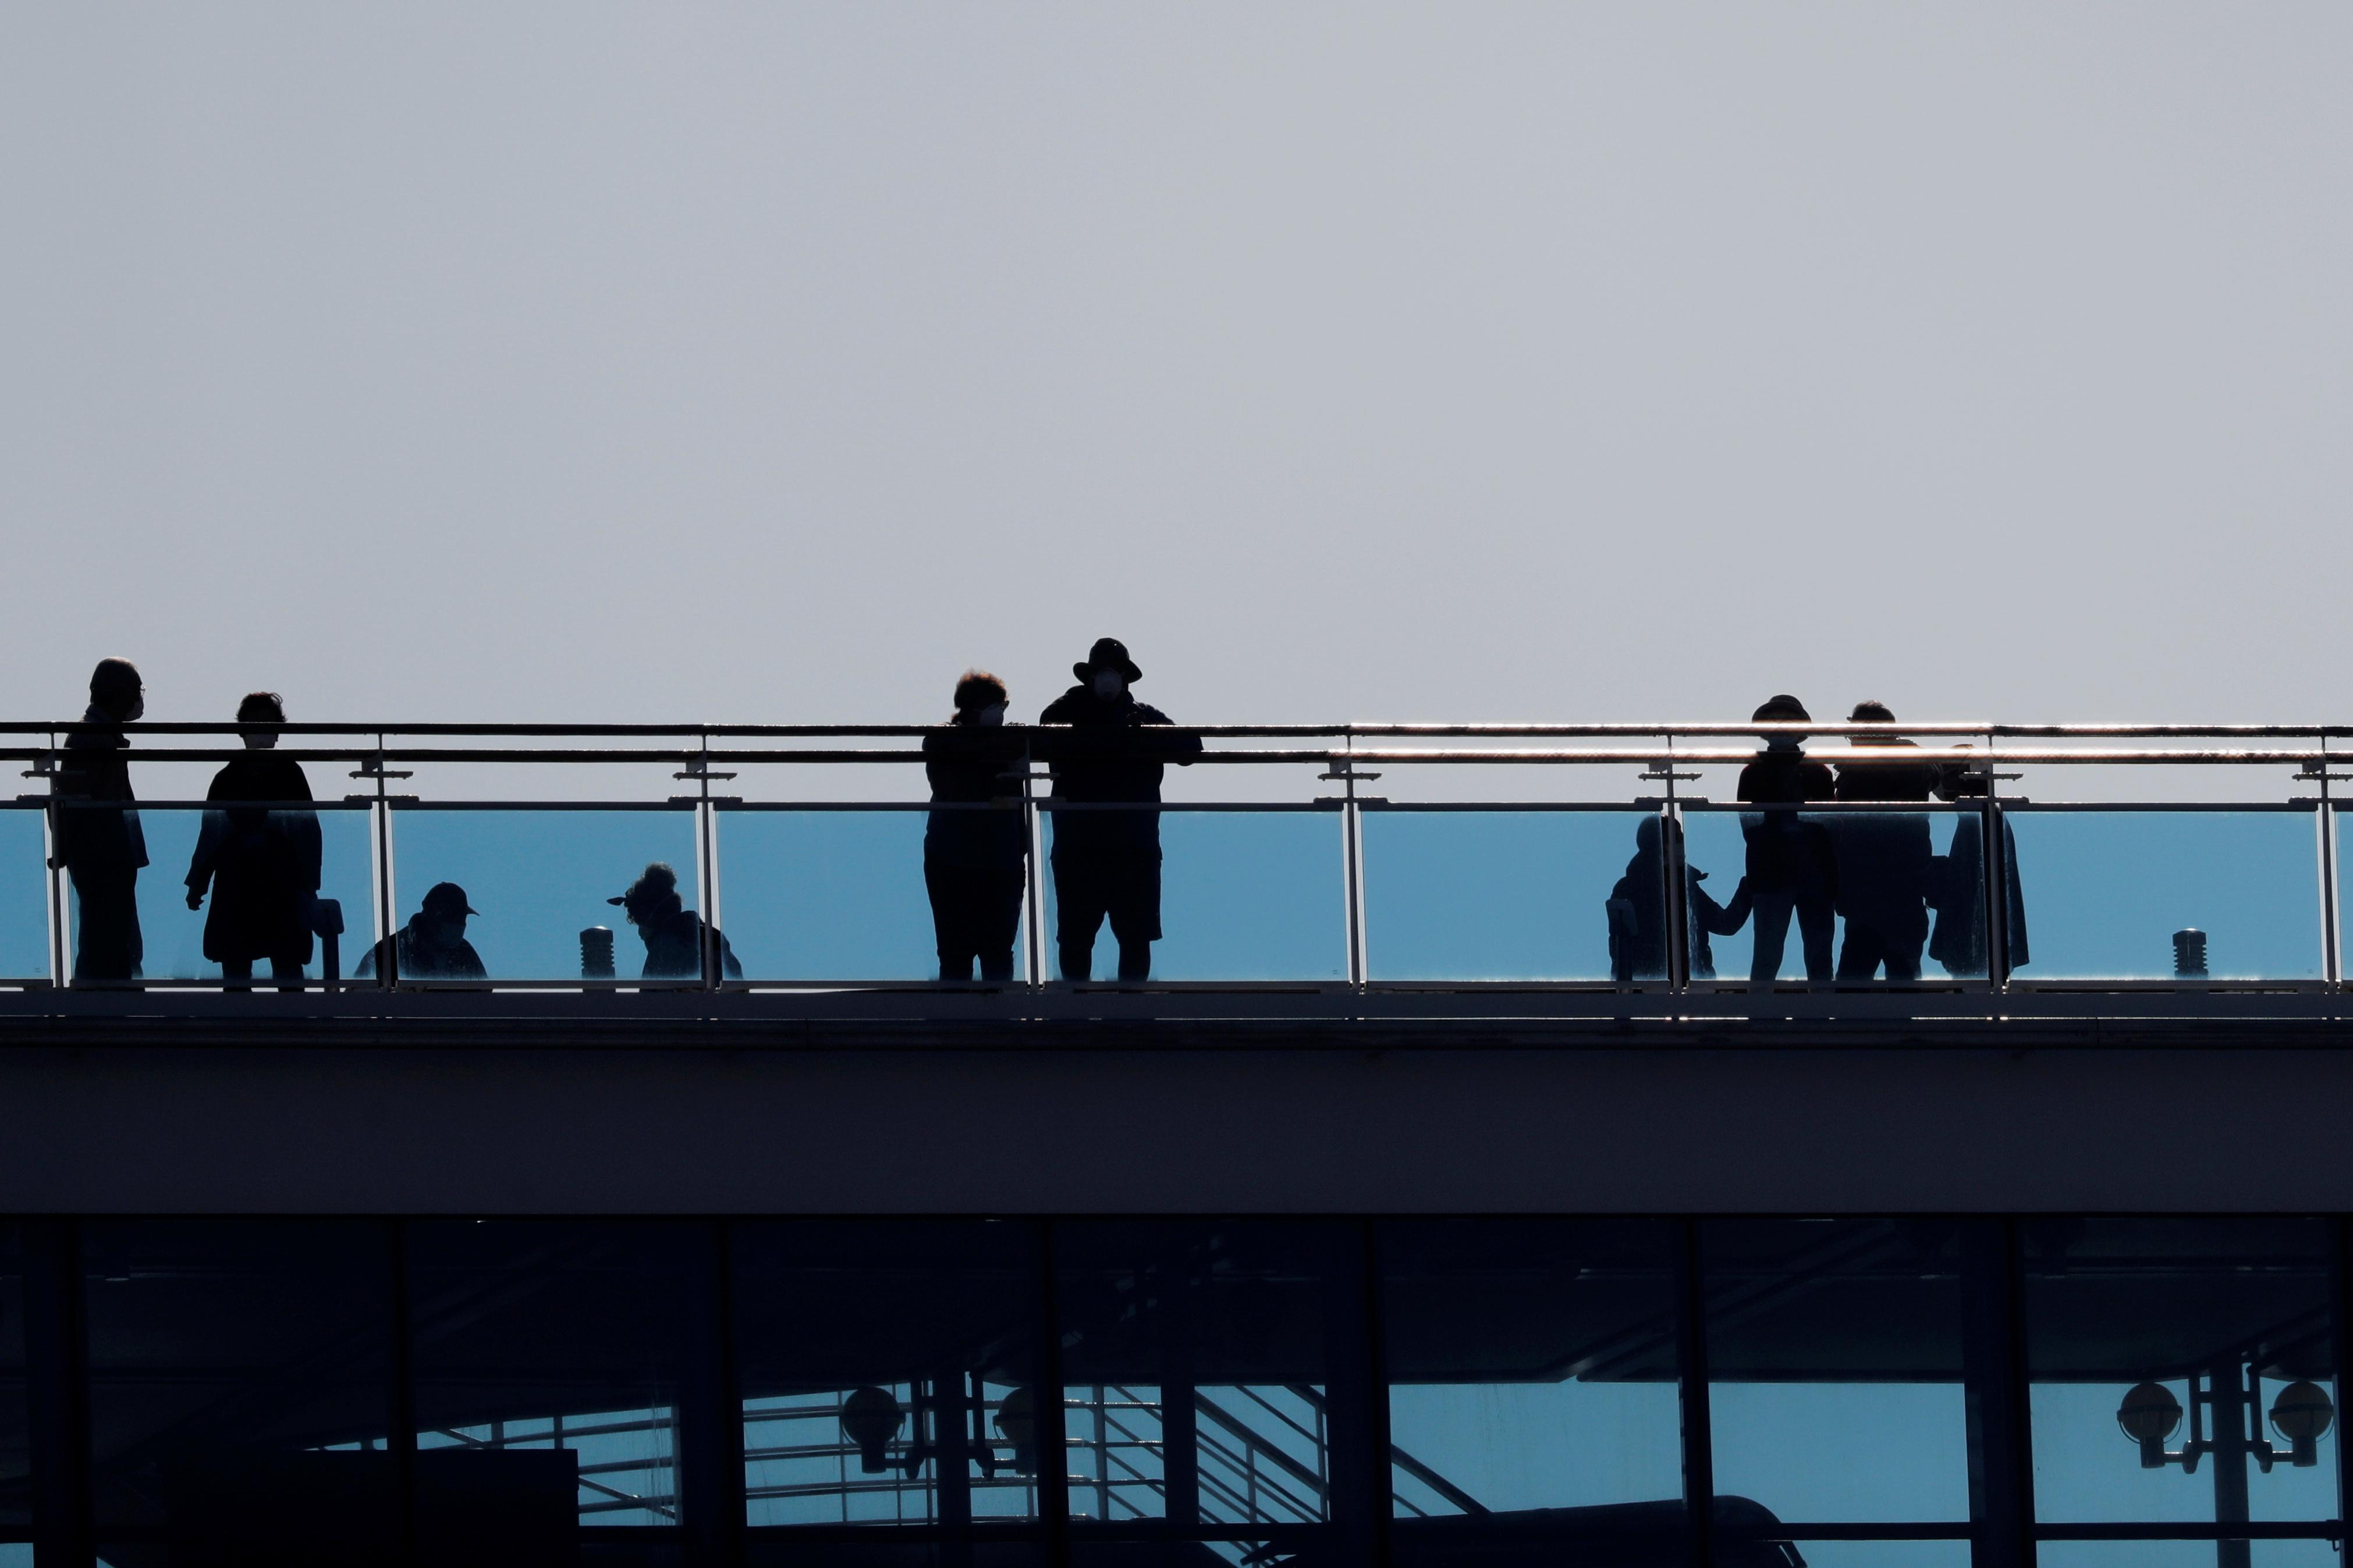 Coronavirus cruise ship ordeal to end early for some as Japan allows elderly to leave